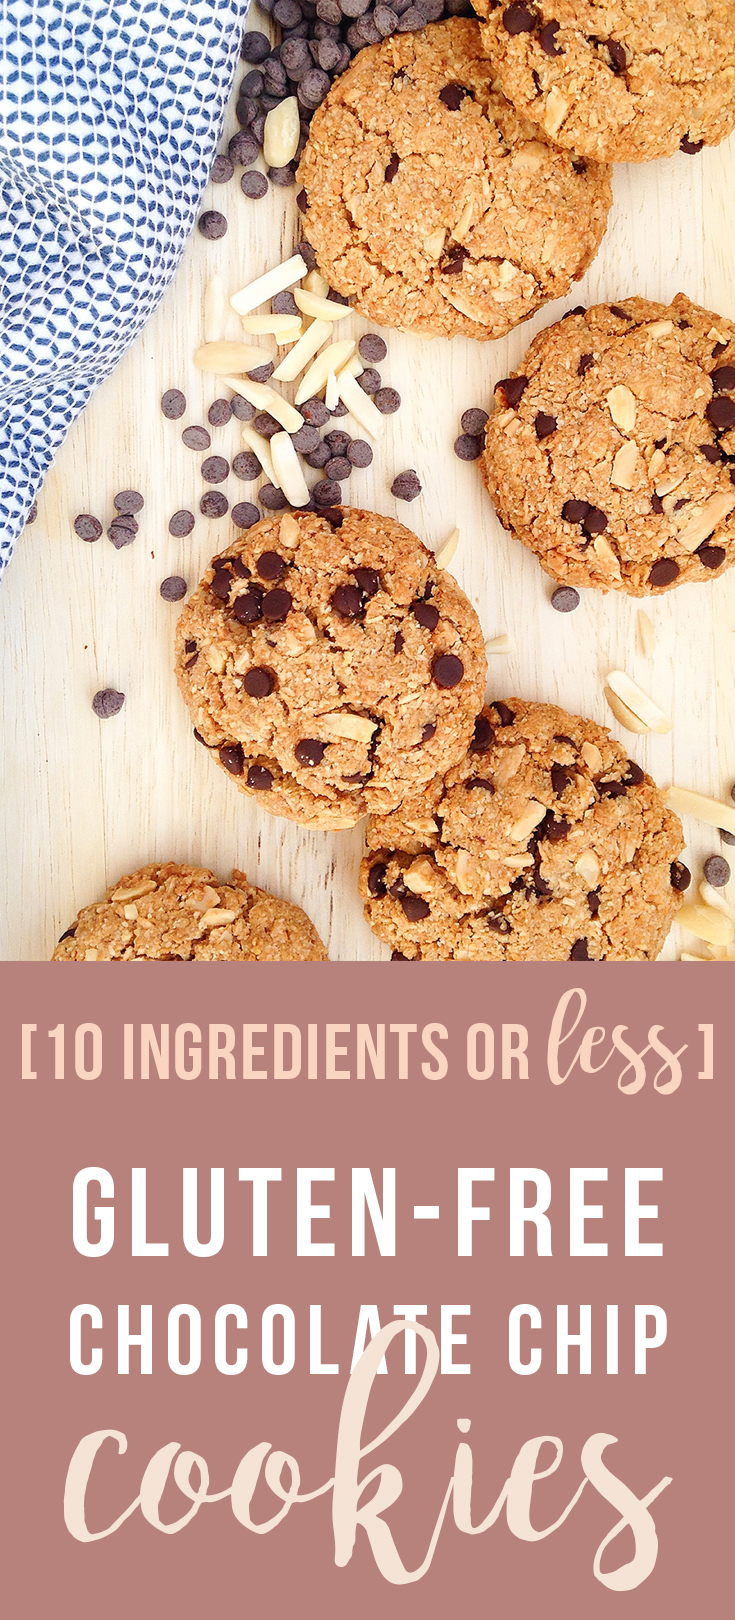 10 Ingredients or Less: these easy Gluten-Free Chocolate Chip Cookies are simple and delicious with less sugar, and no gluten, preservatives, or artificial flavors. Click to read the recipe or pin to save for later!   Fresh Planet Flavor #glutenfree #healthy #cookies #10ingredientsorless